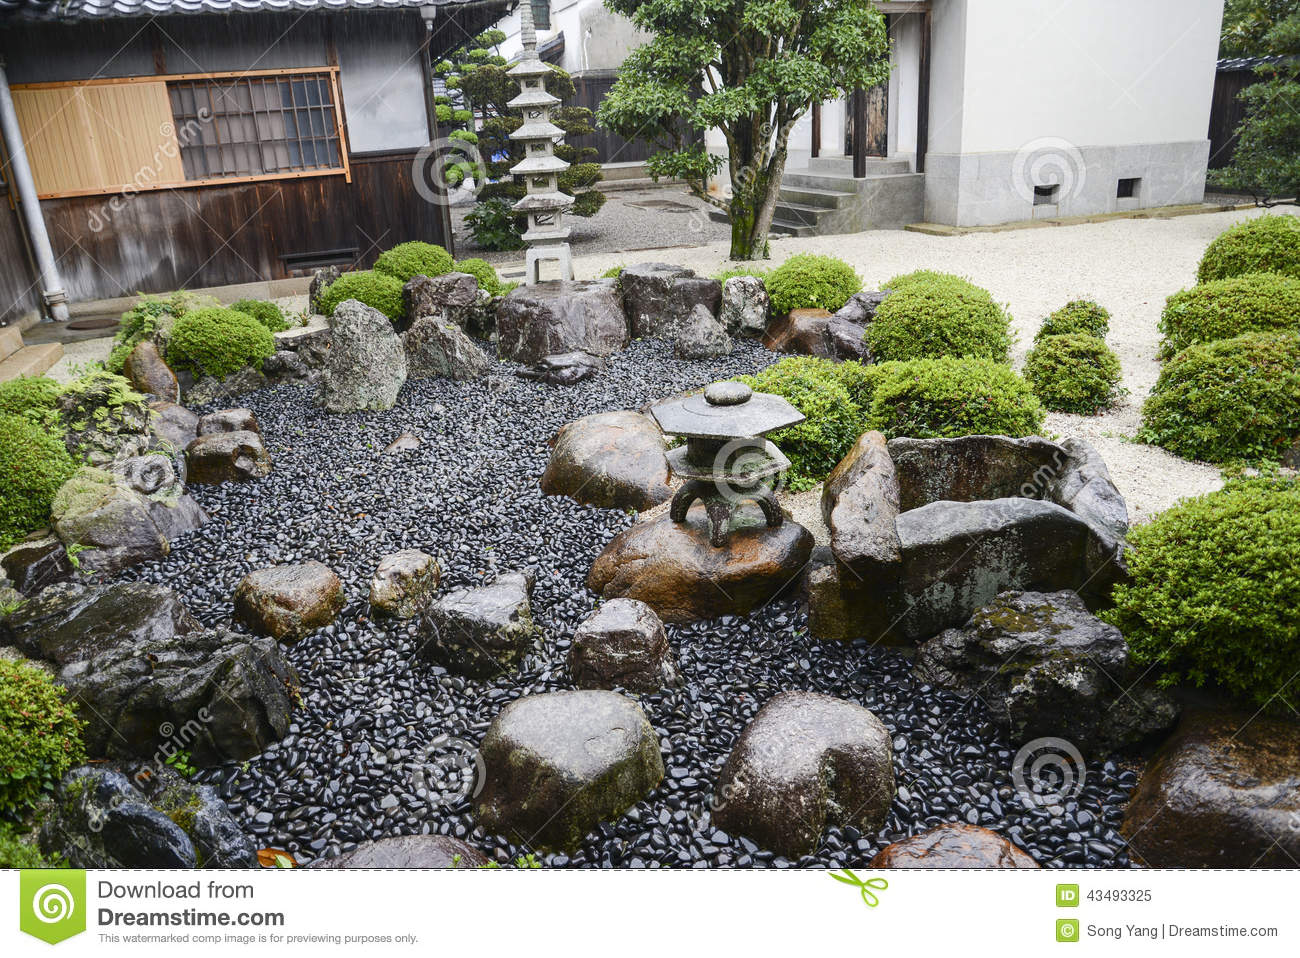 japanischer garten in kyoto japan stockfoto bild 43493325. Black Bedroom Furniture Sets. Home Design Ideas